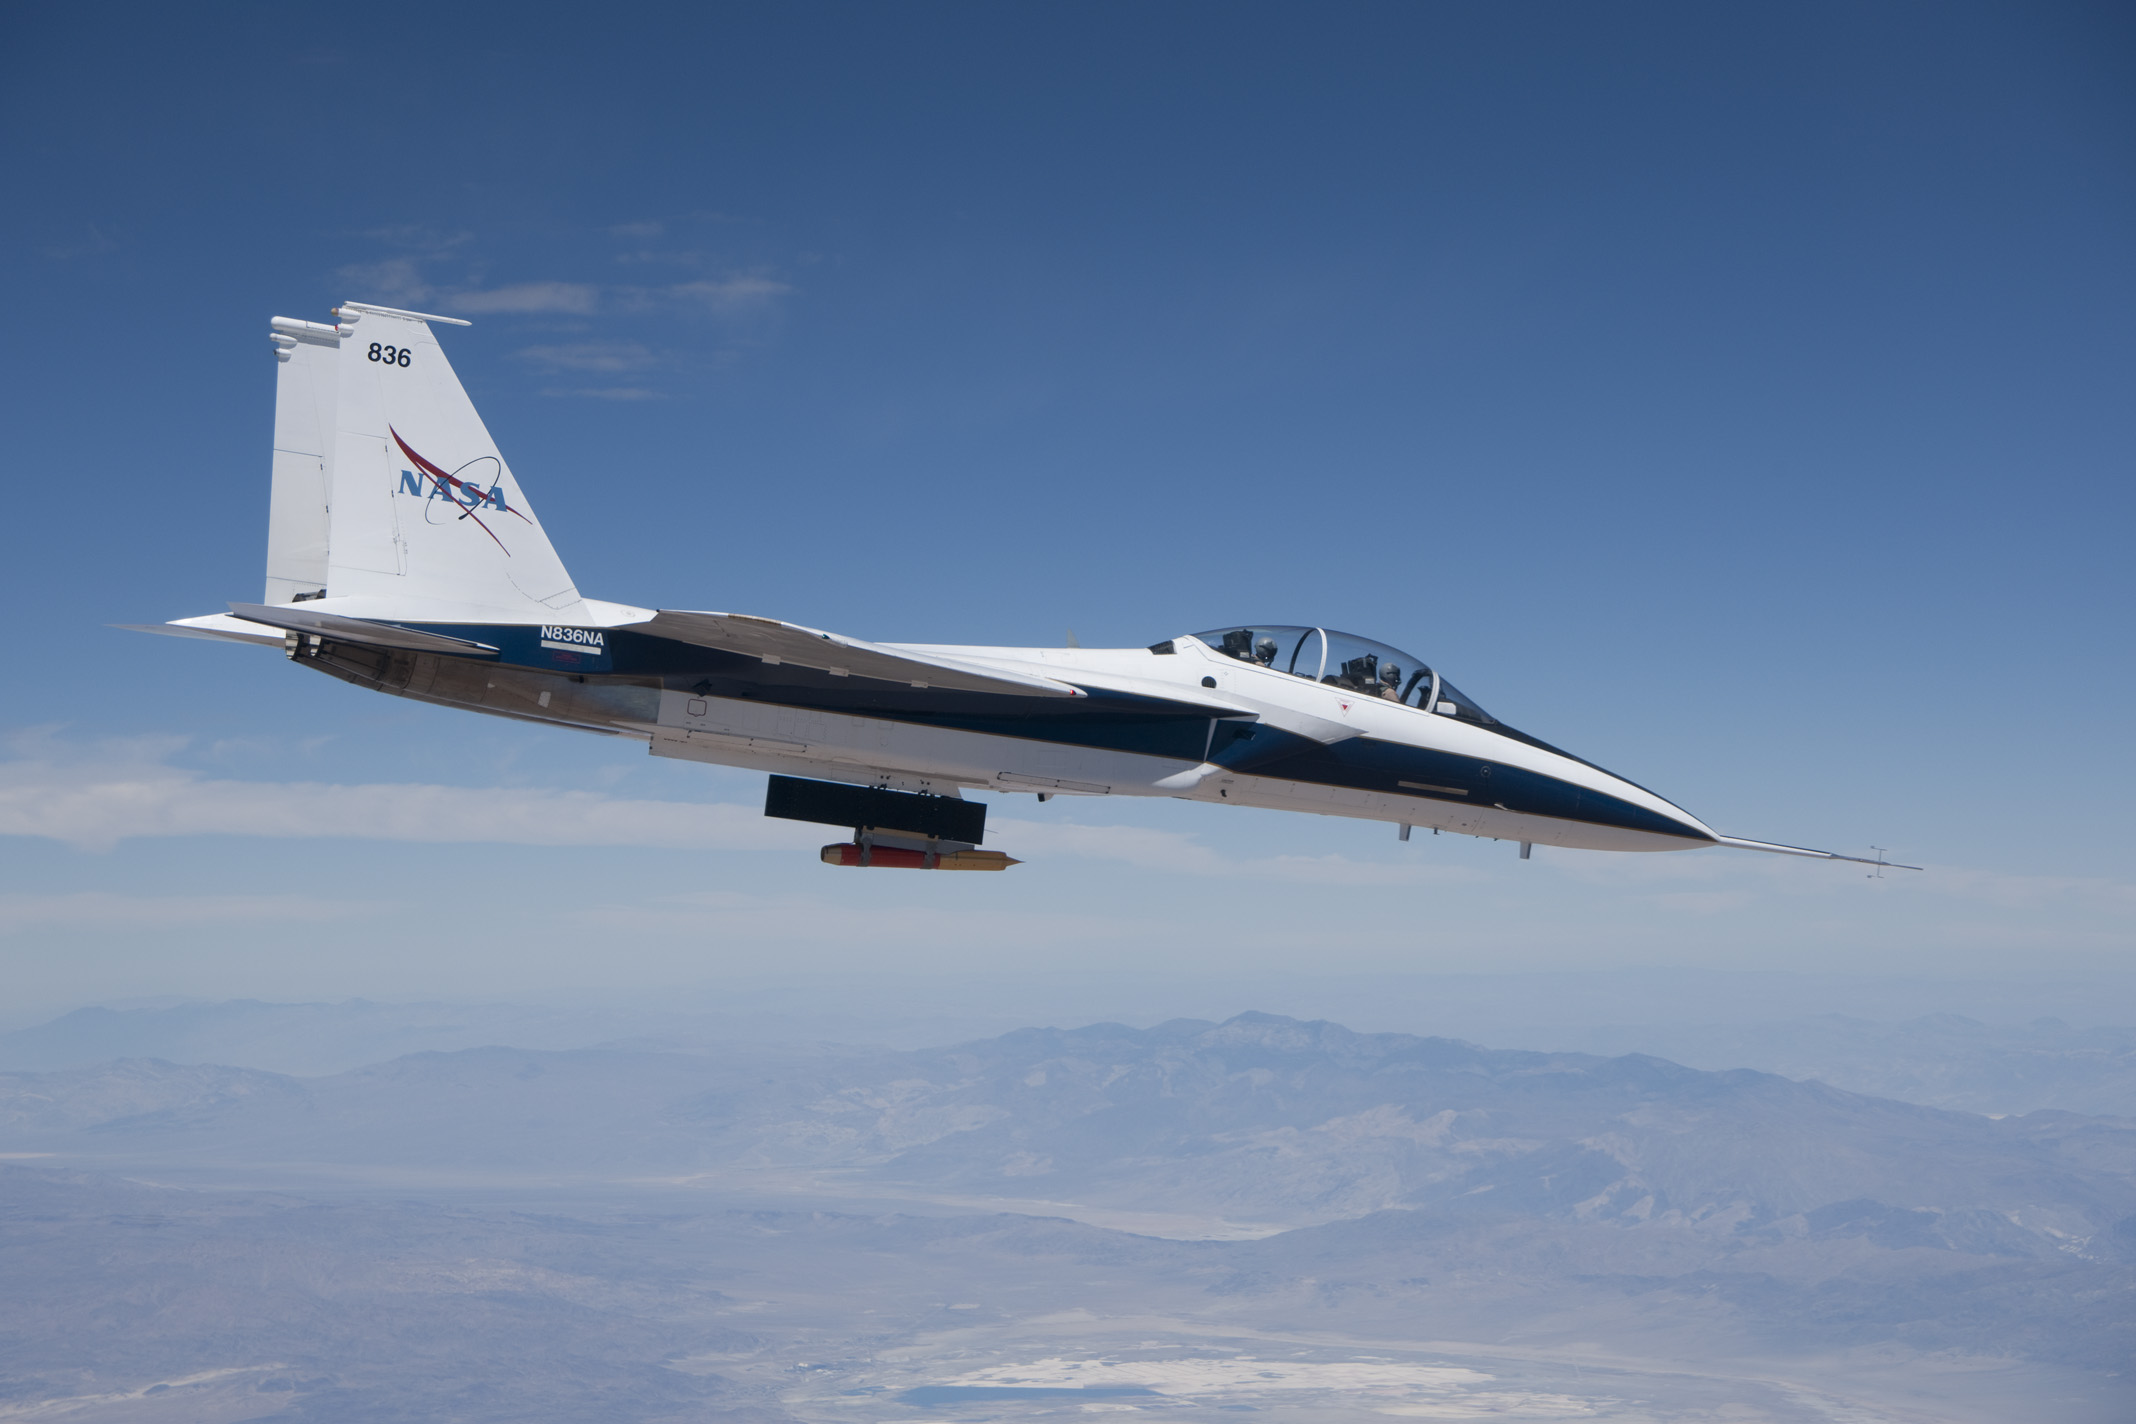 NASA Jets - Pics about space